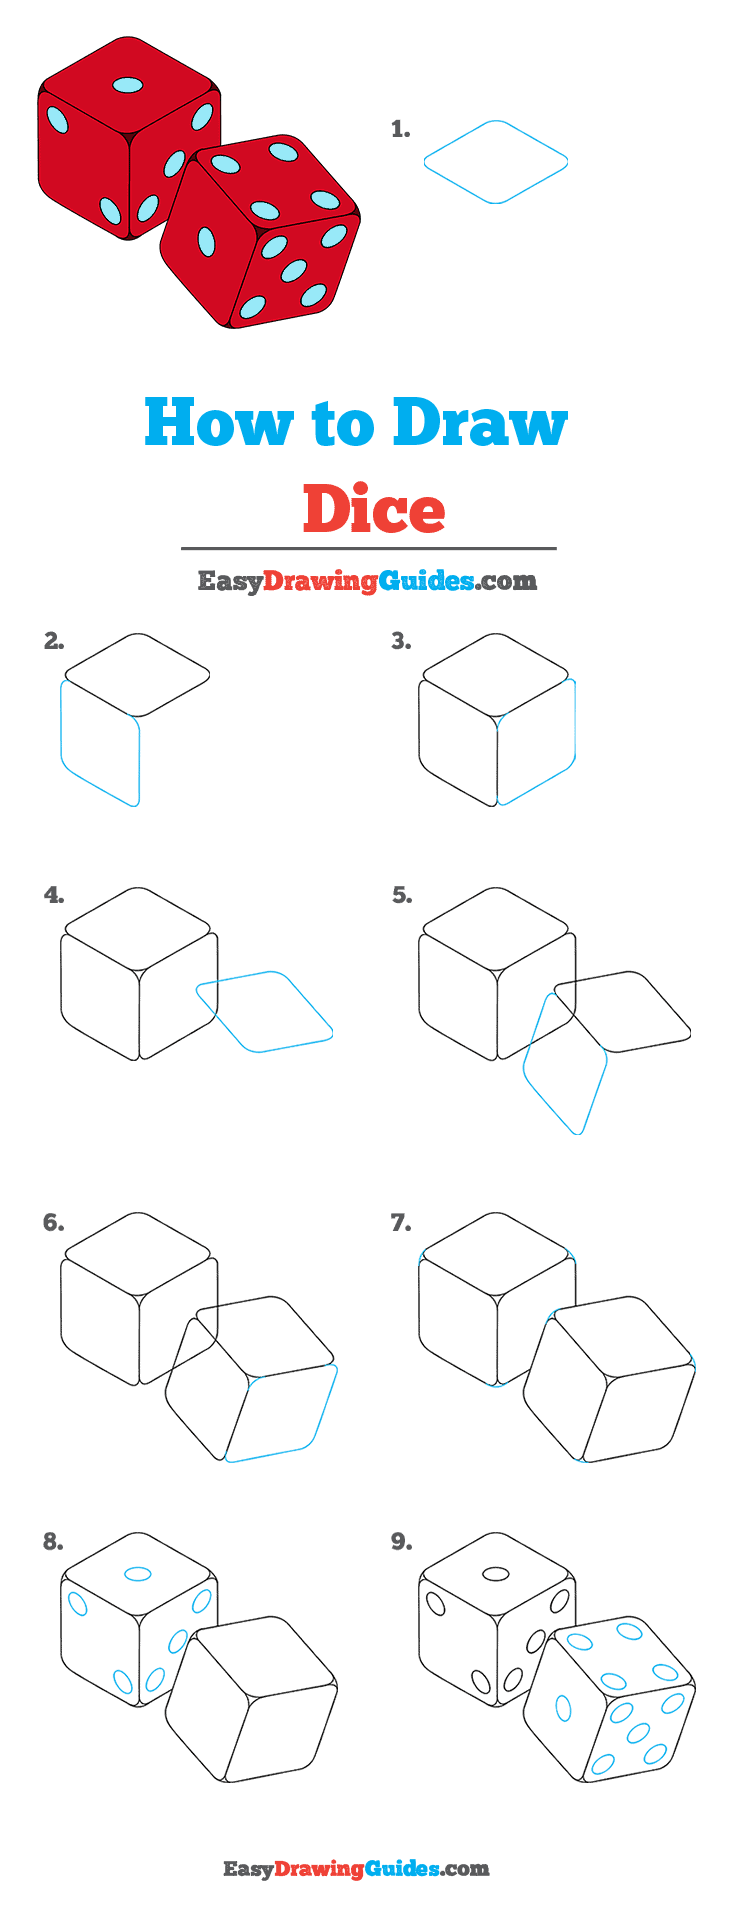 How to Draw Dice